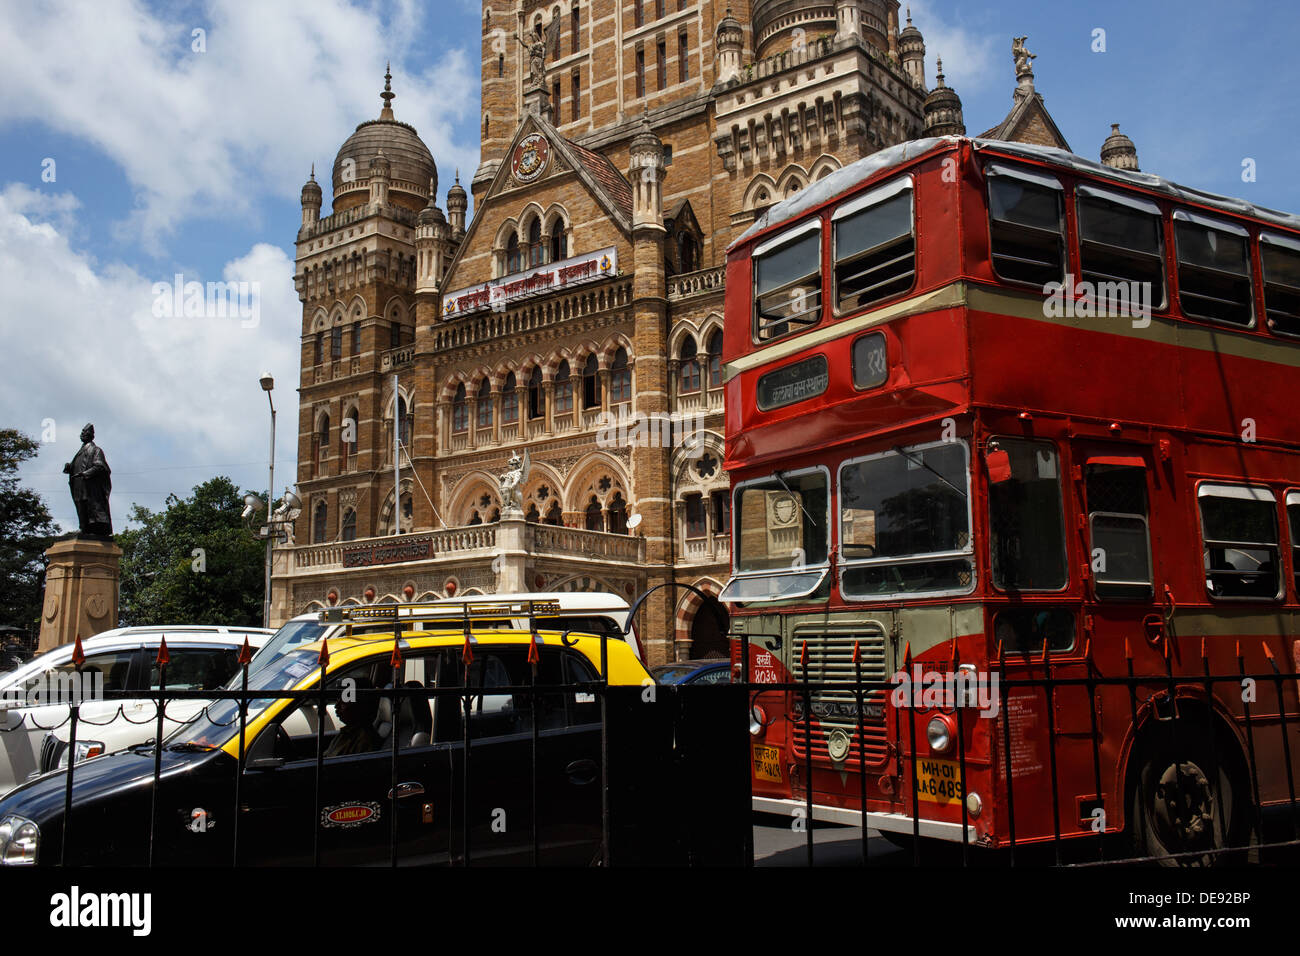 A red double decker bus, black taxi and cars in the traffic with the  Municipal Corporation Building in the background, Mumbai - Stock Image